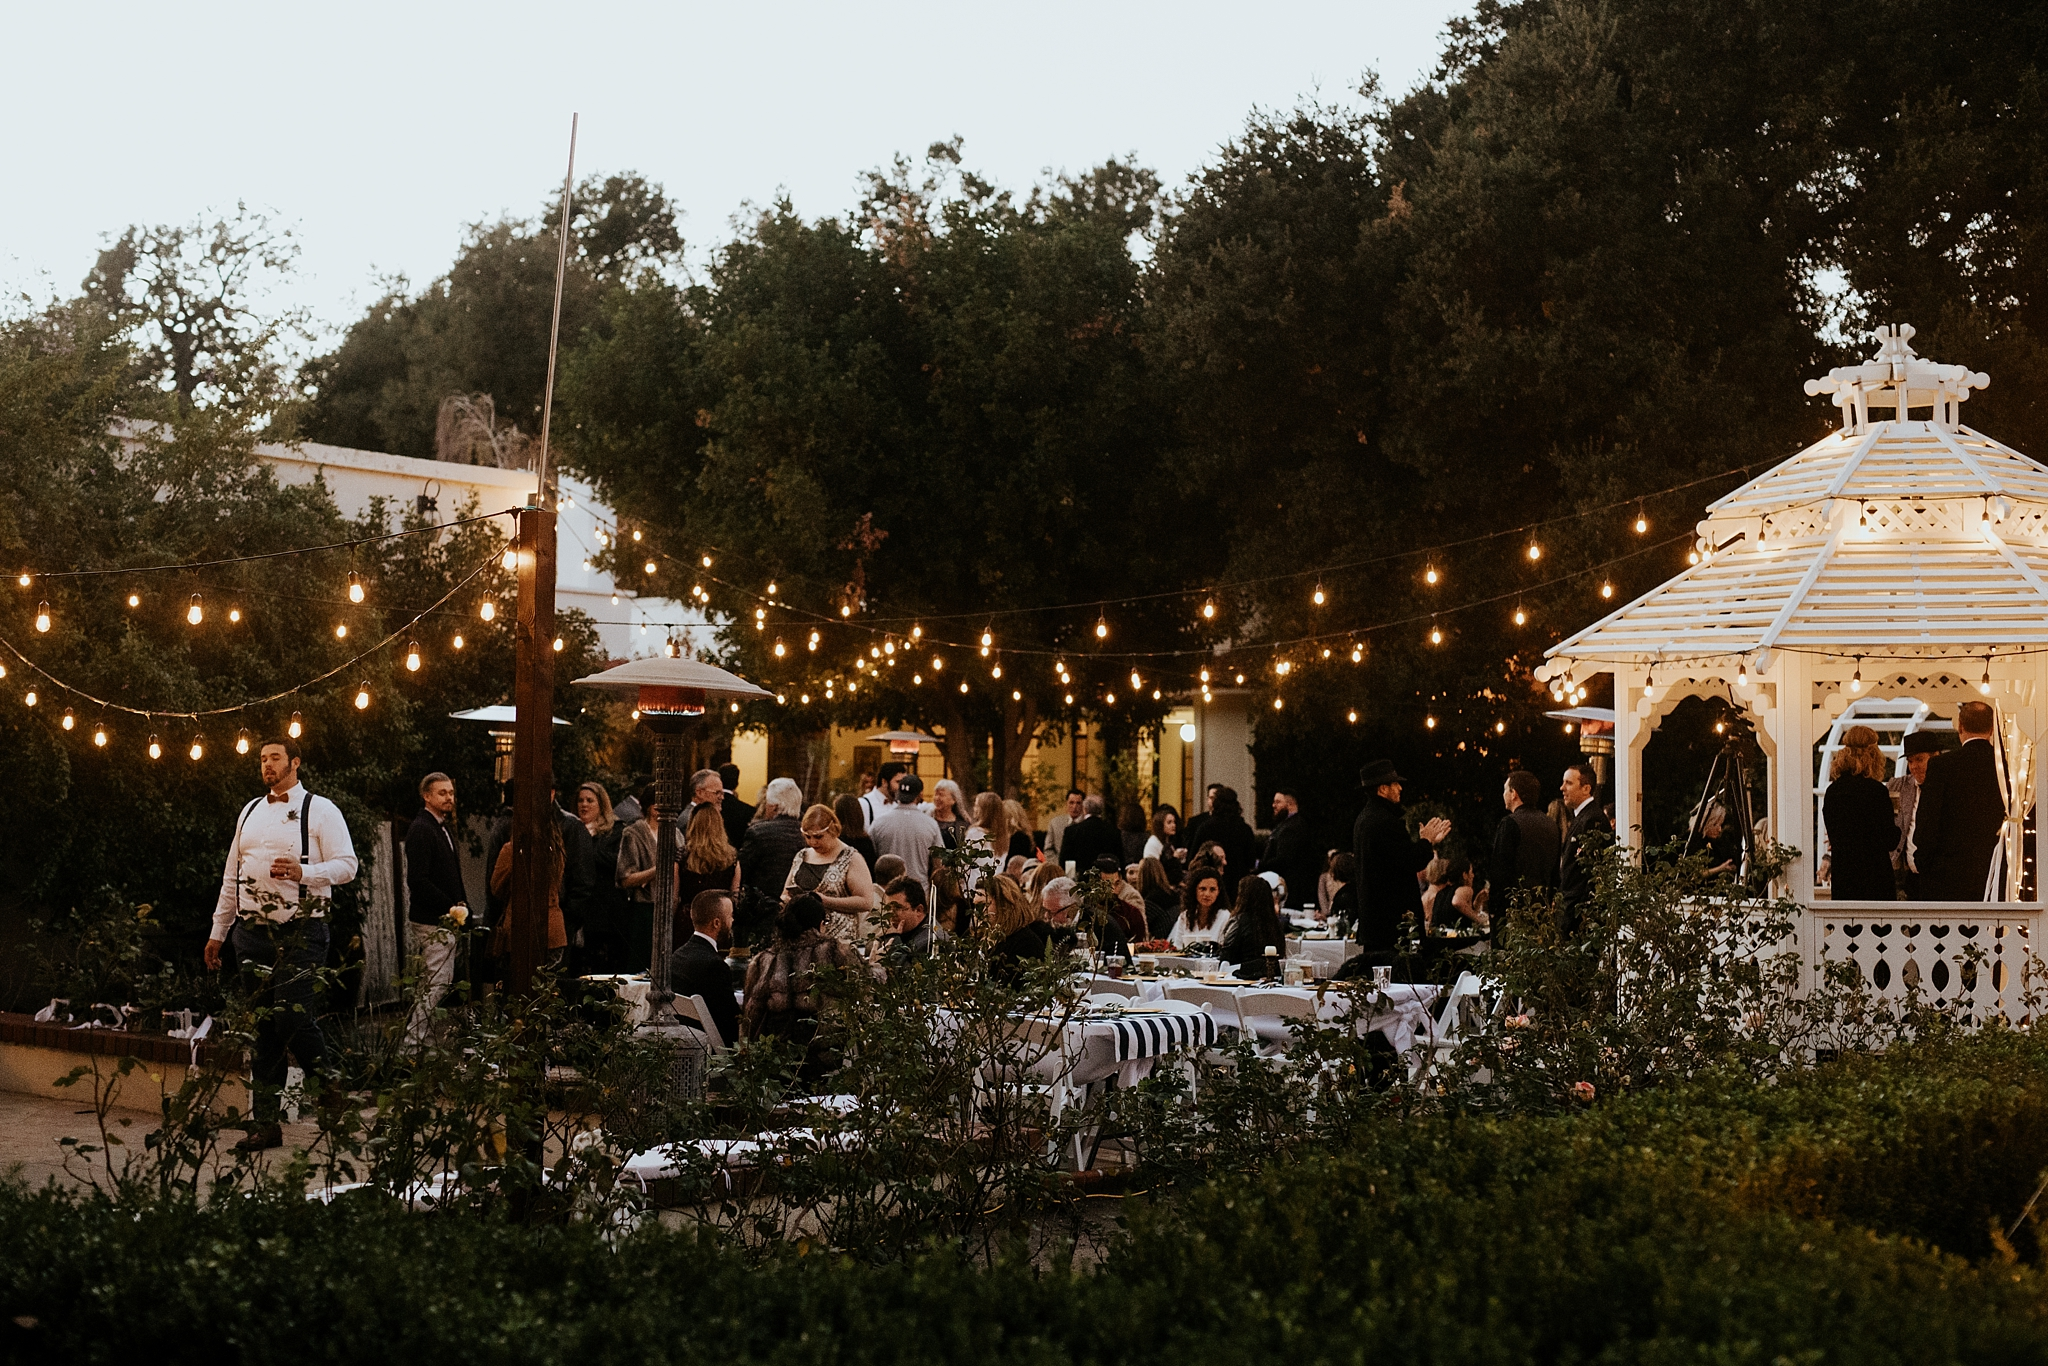 Orcutt Ranch Wedding.Outdoor Bohemian Wedding At Orcutt Ranch In Los Angeles California